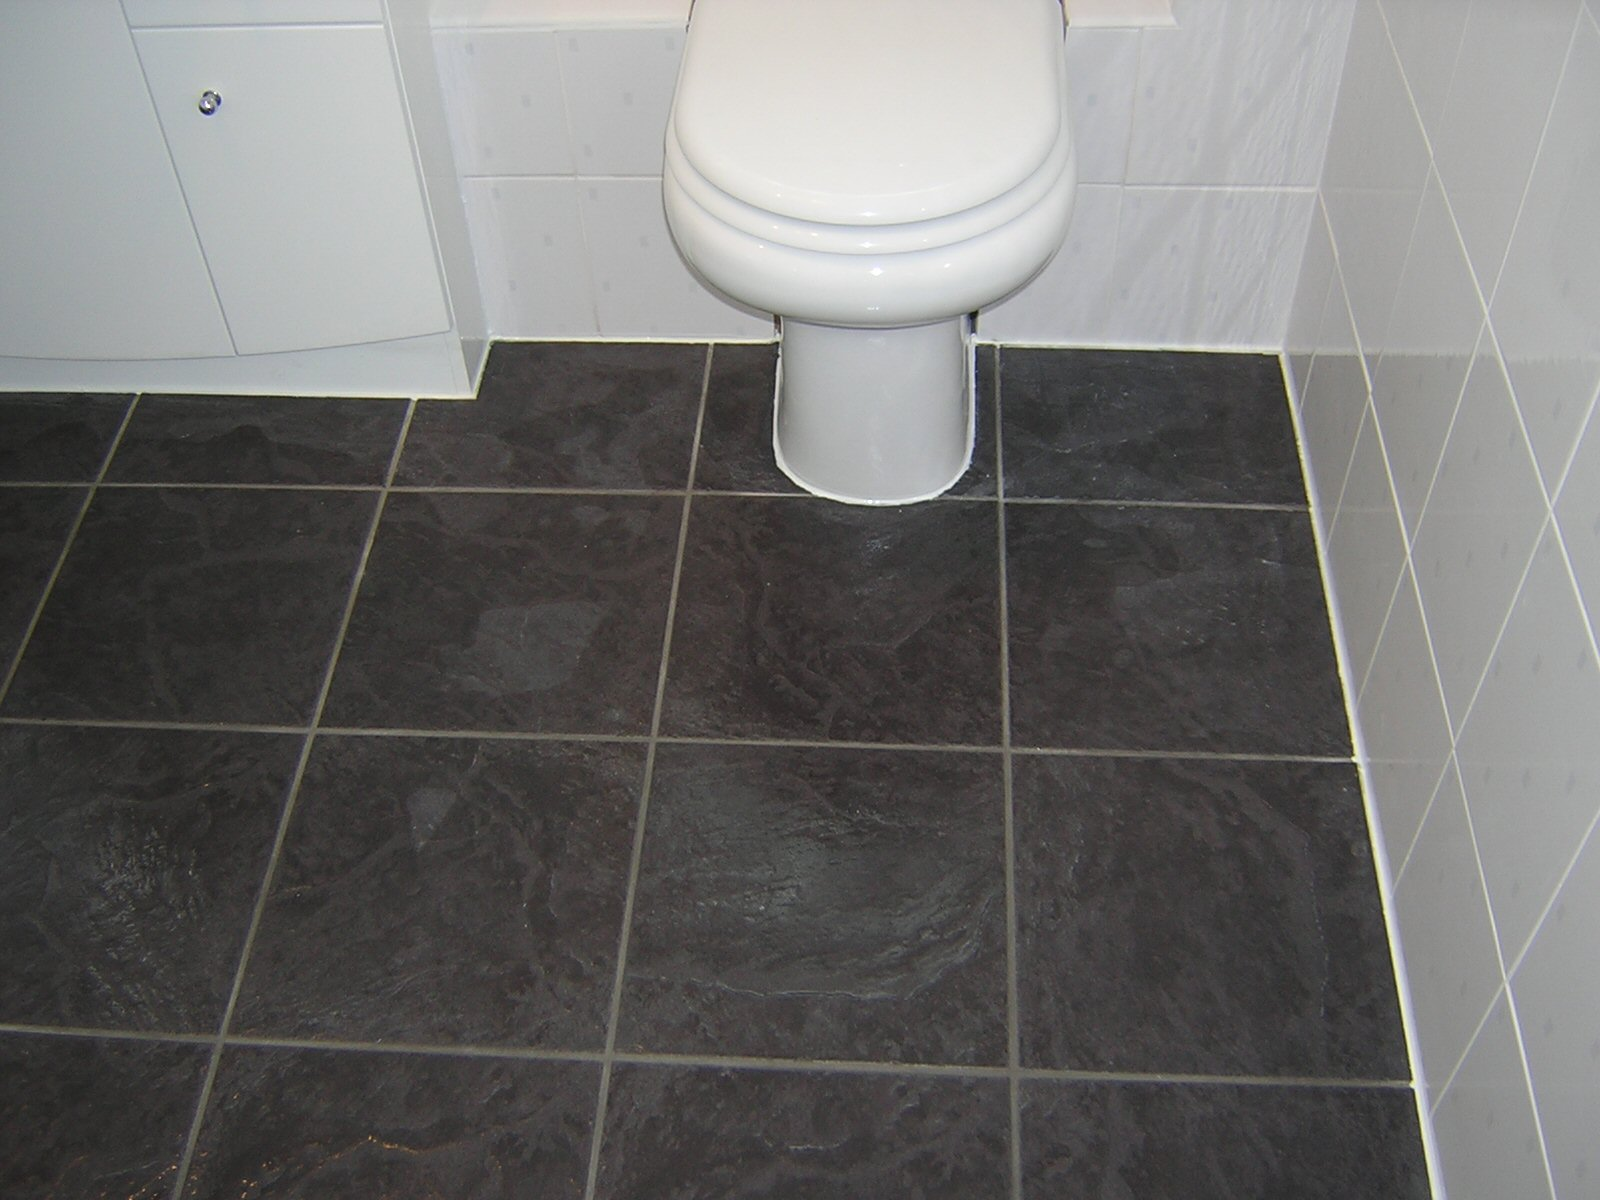 flooring-for-bathrooms-and-vinyl-flooring-bathroom-rubber-flooring-uk-nice